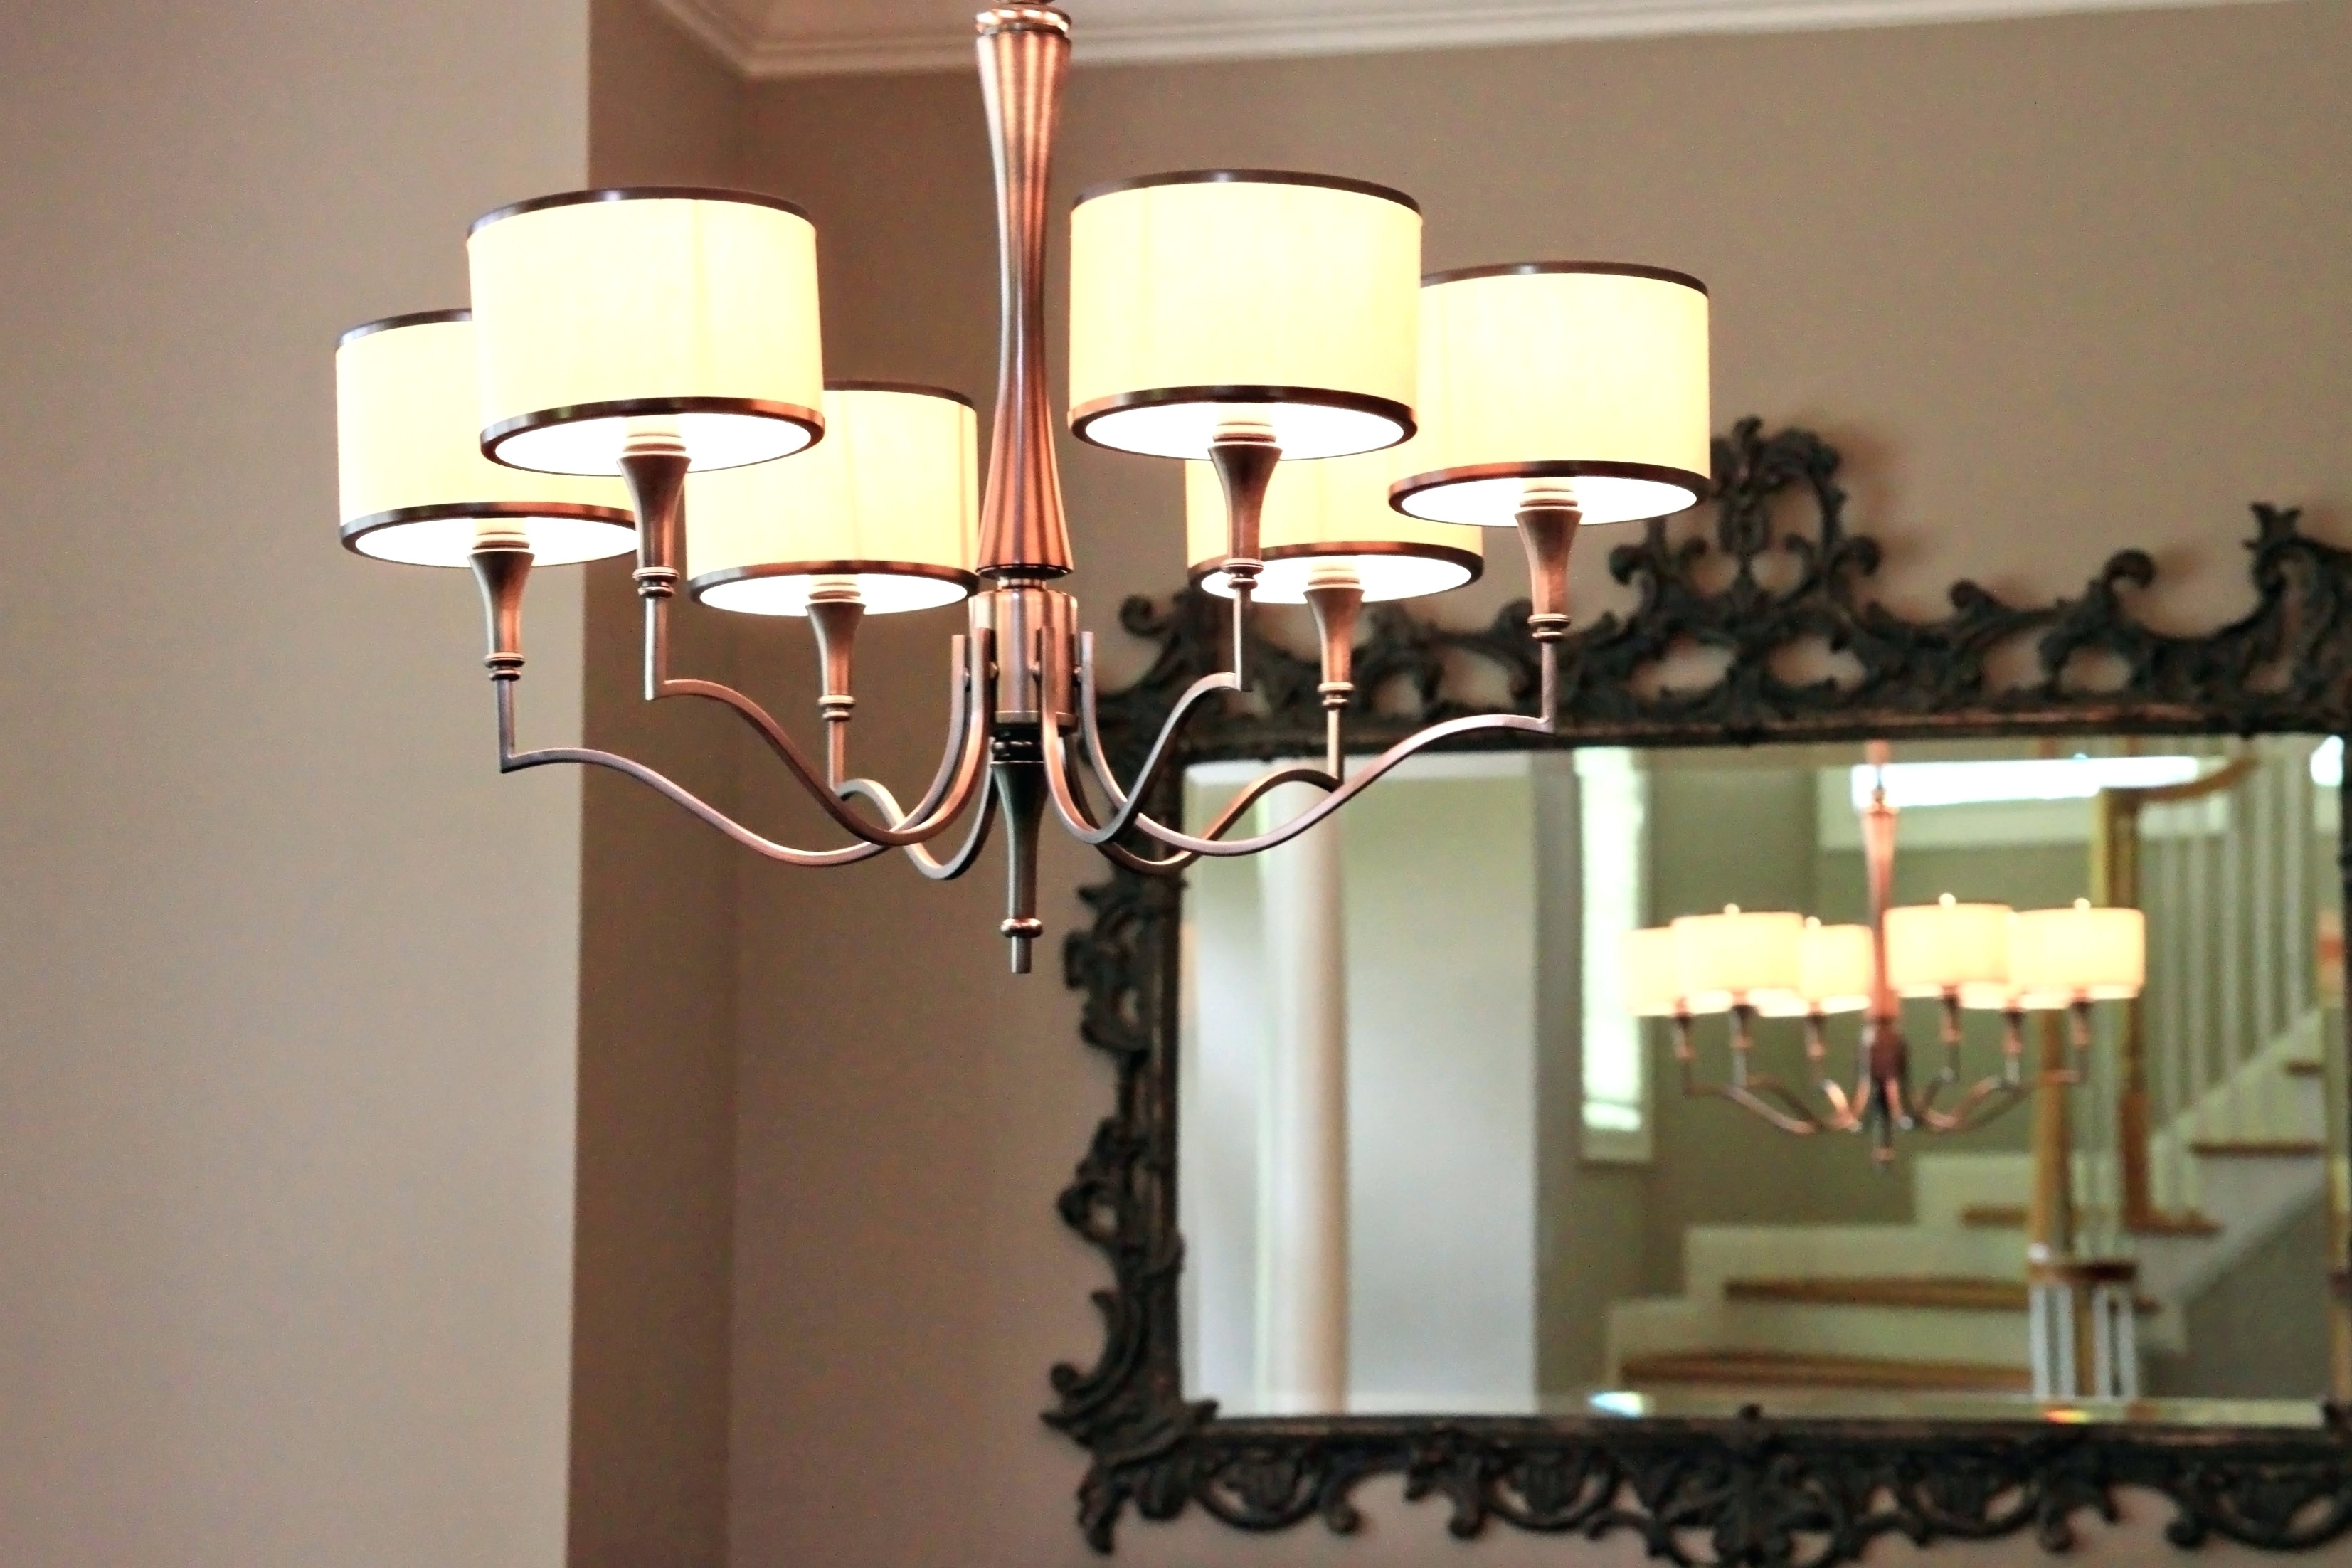 Most Recent Chandeliers ~ Wall Mounted Candle Chandelier Dining Room Dining Room Regarding Wall Mounted Mini Chandeliers (View 8 of 20)